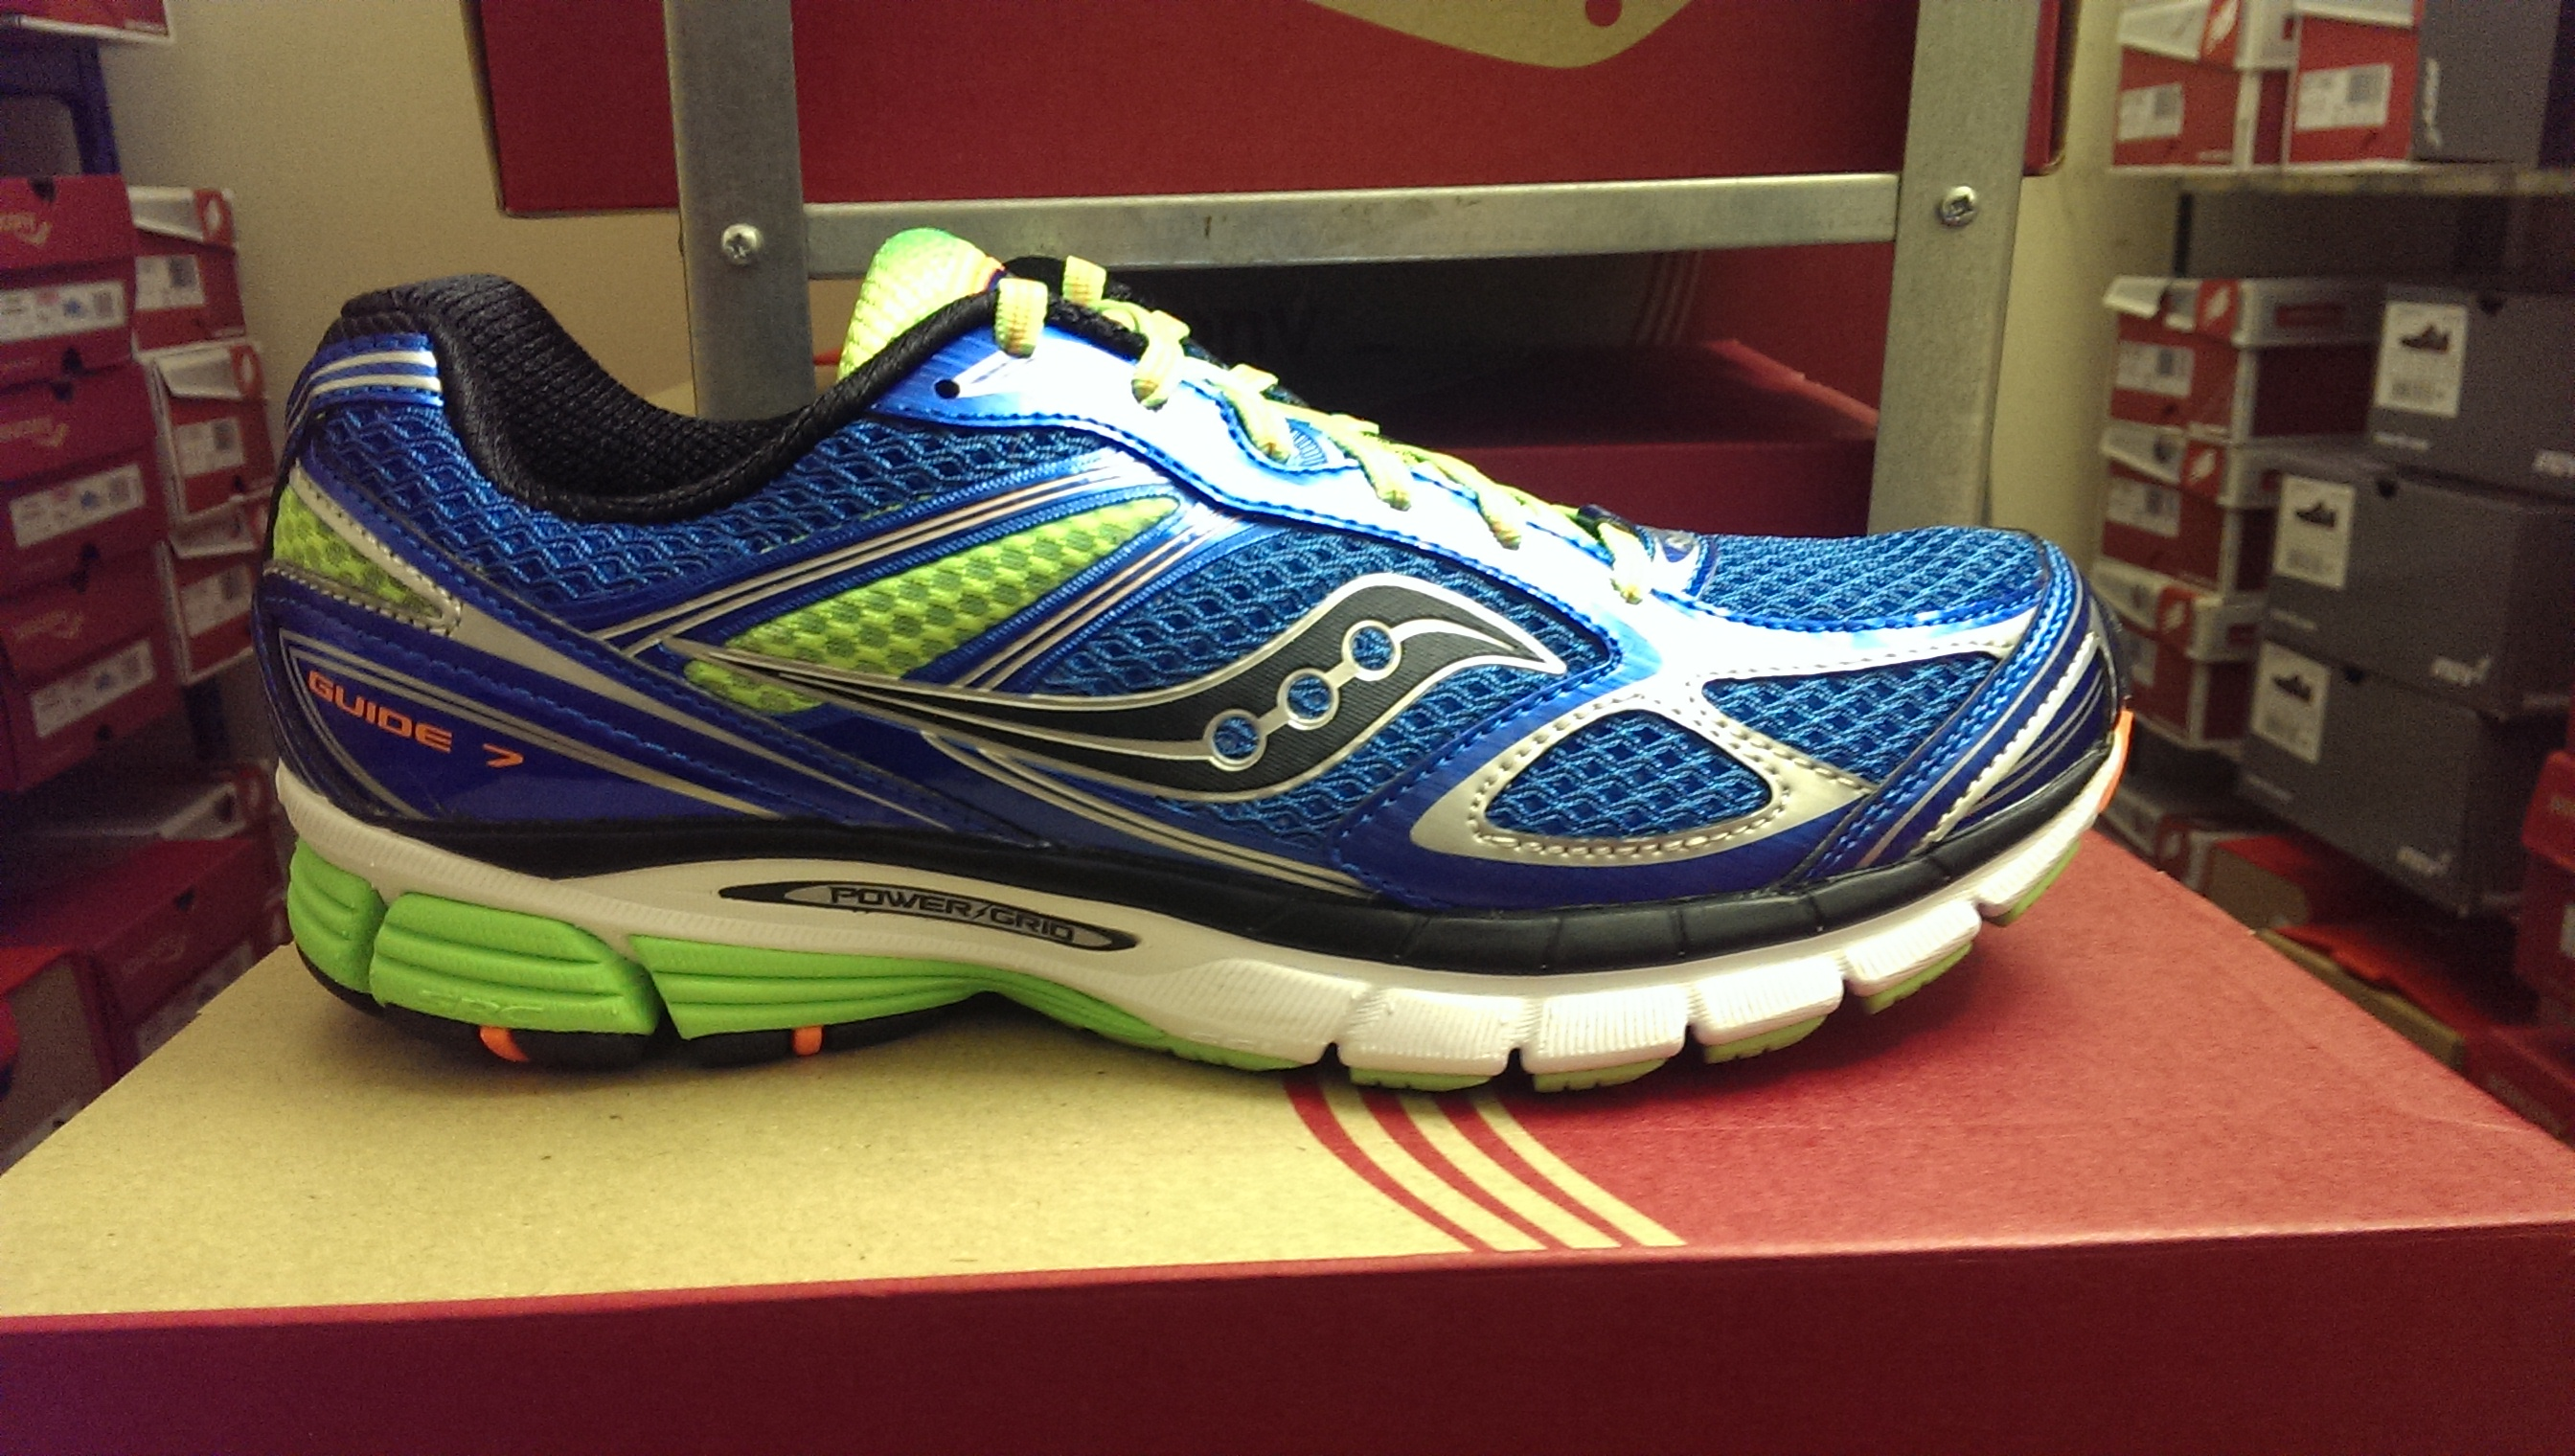 The Running Shoe Review Saucony Powergrid Guide 7